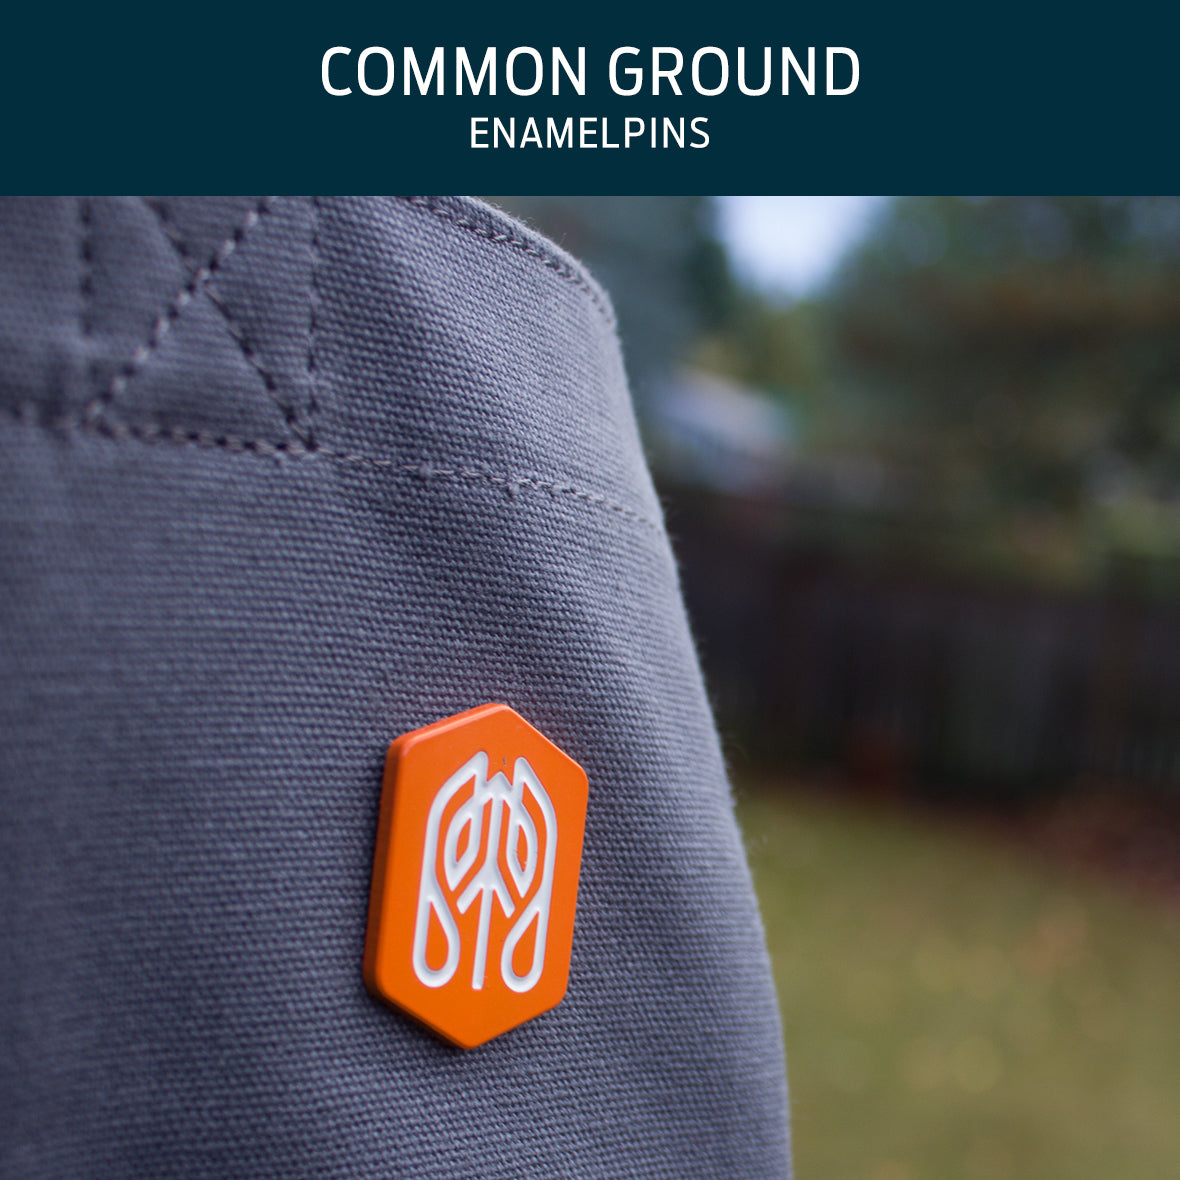 Common Ground Enamel Pins